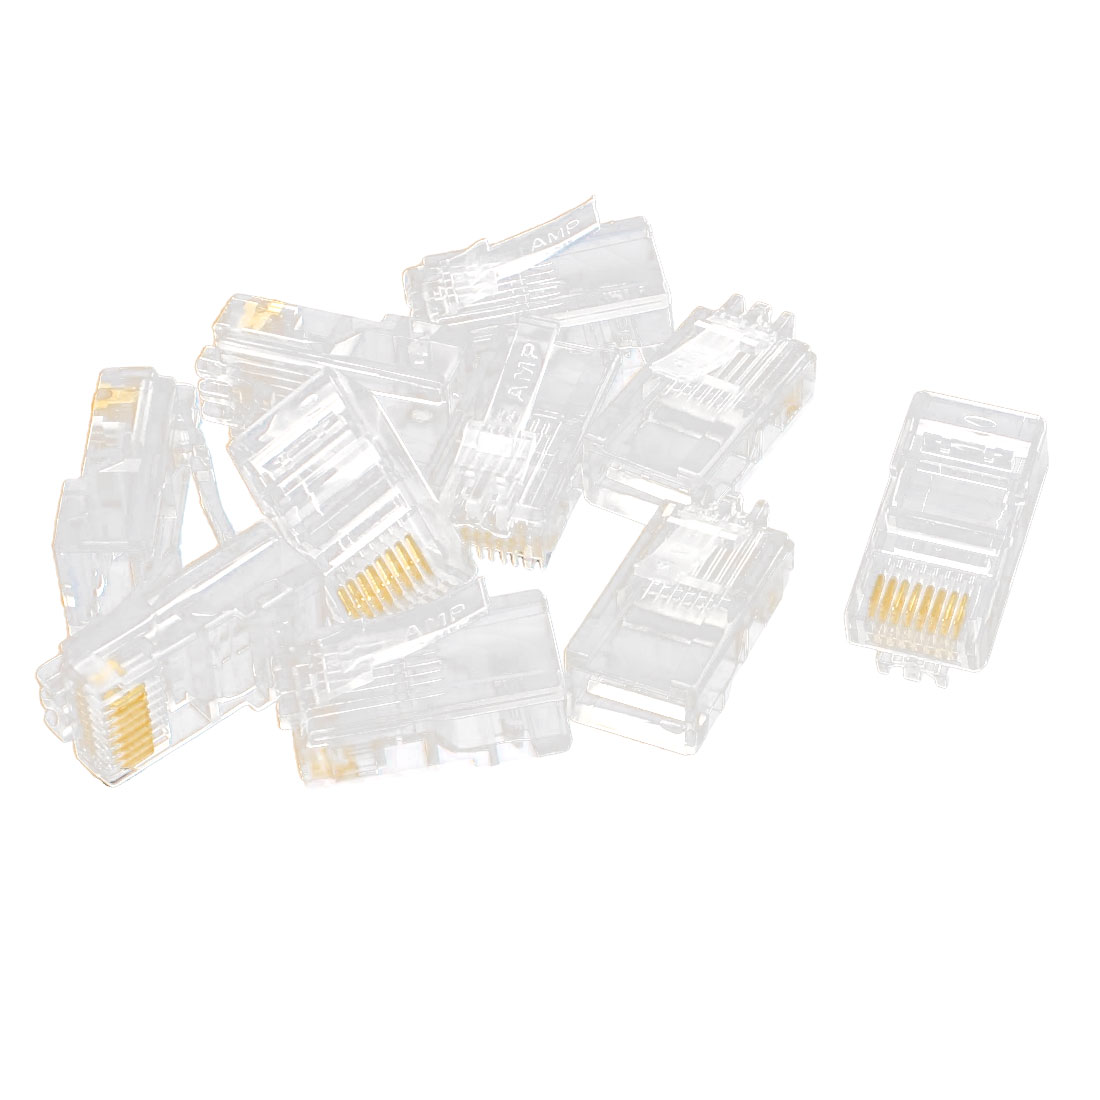 hight resolution of 10 pcs rj45 network cable modular cat5 cat5e 8p8c connector end